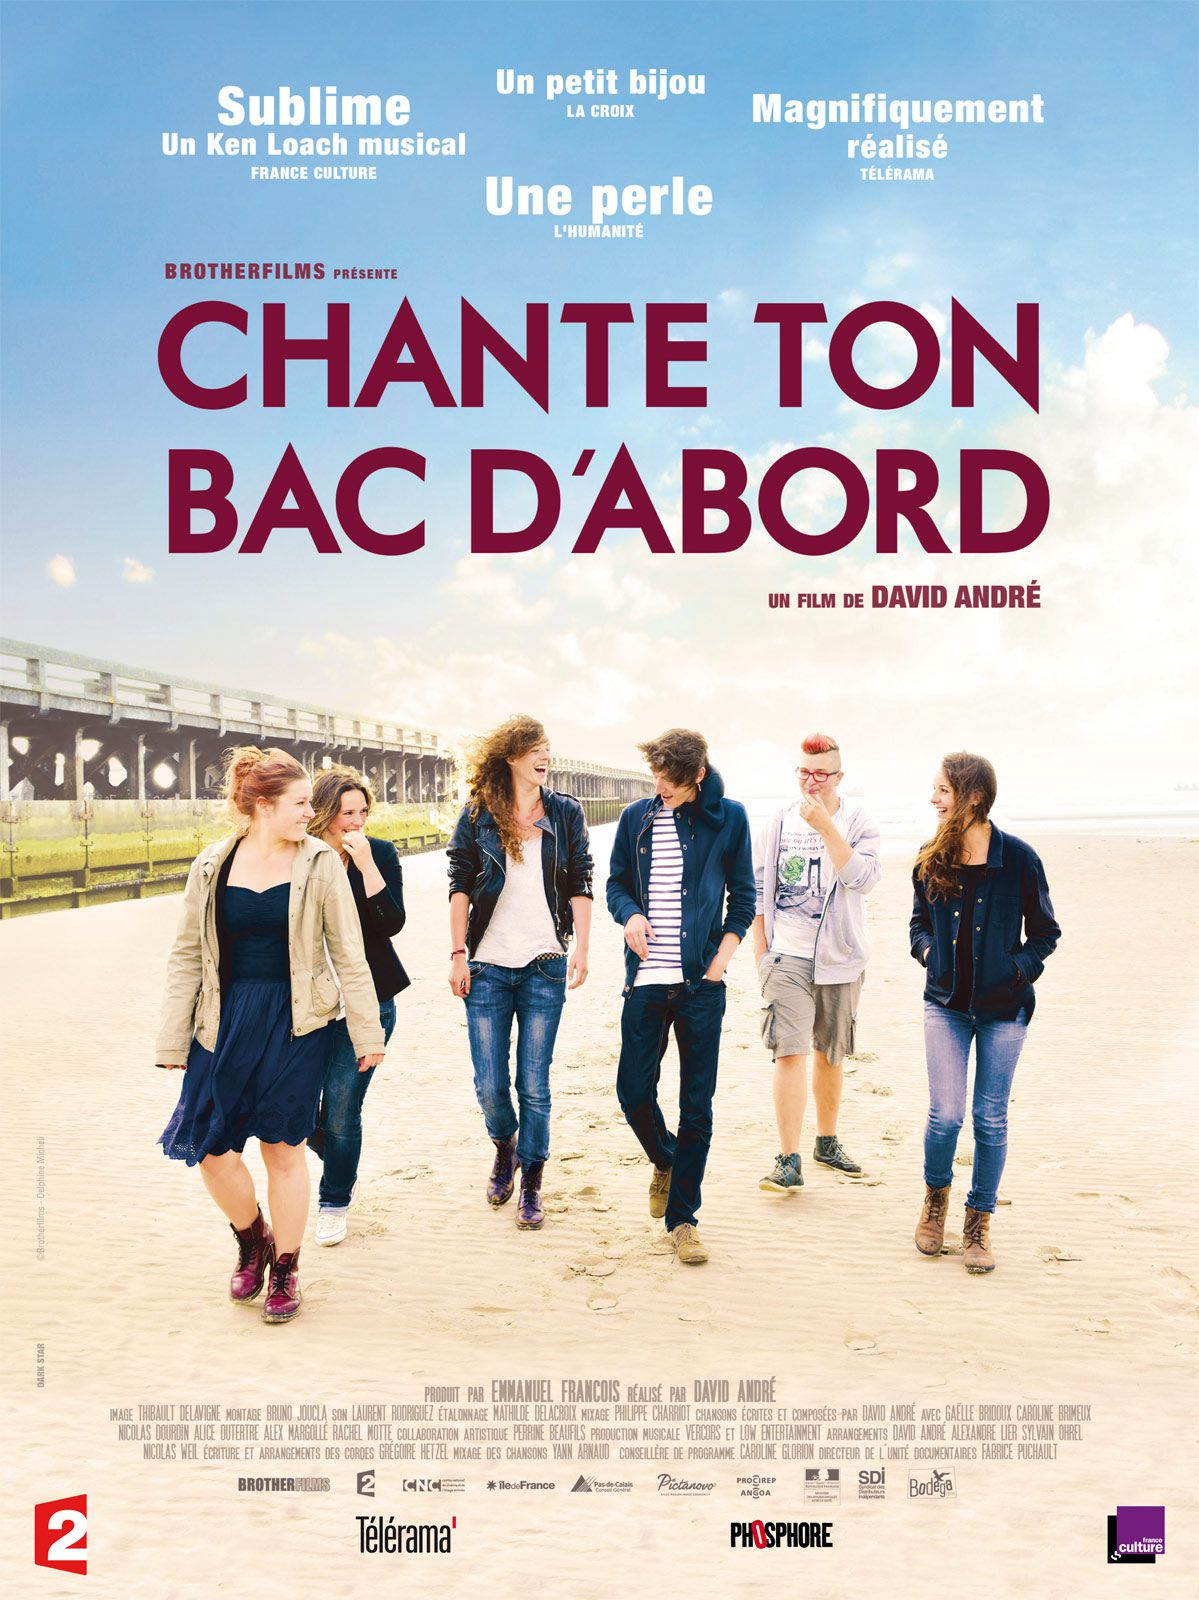 Chante ton bac d'abord - Documentaire (2014)